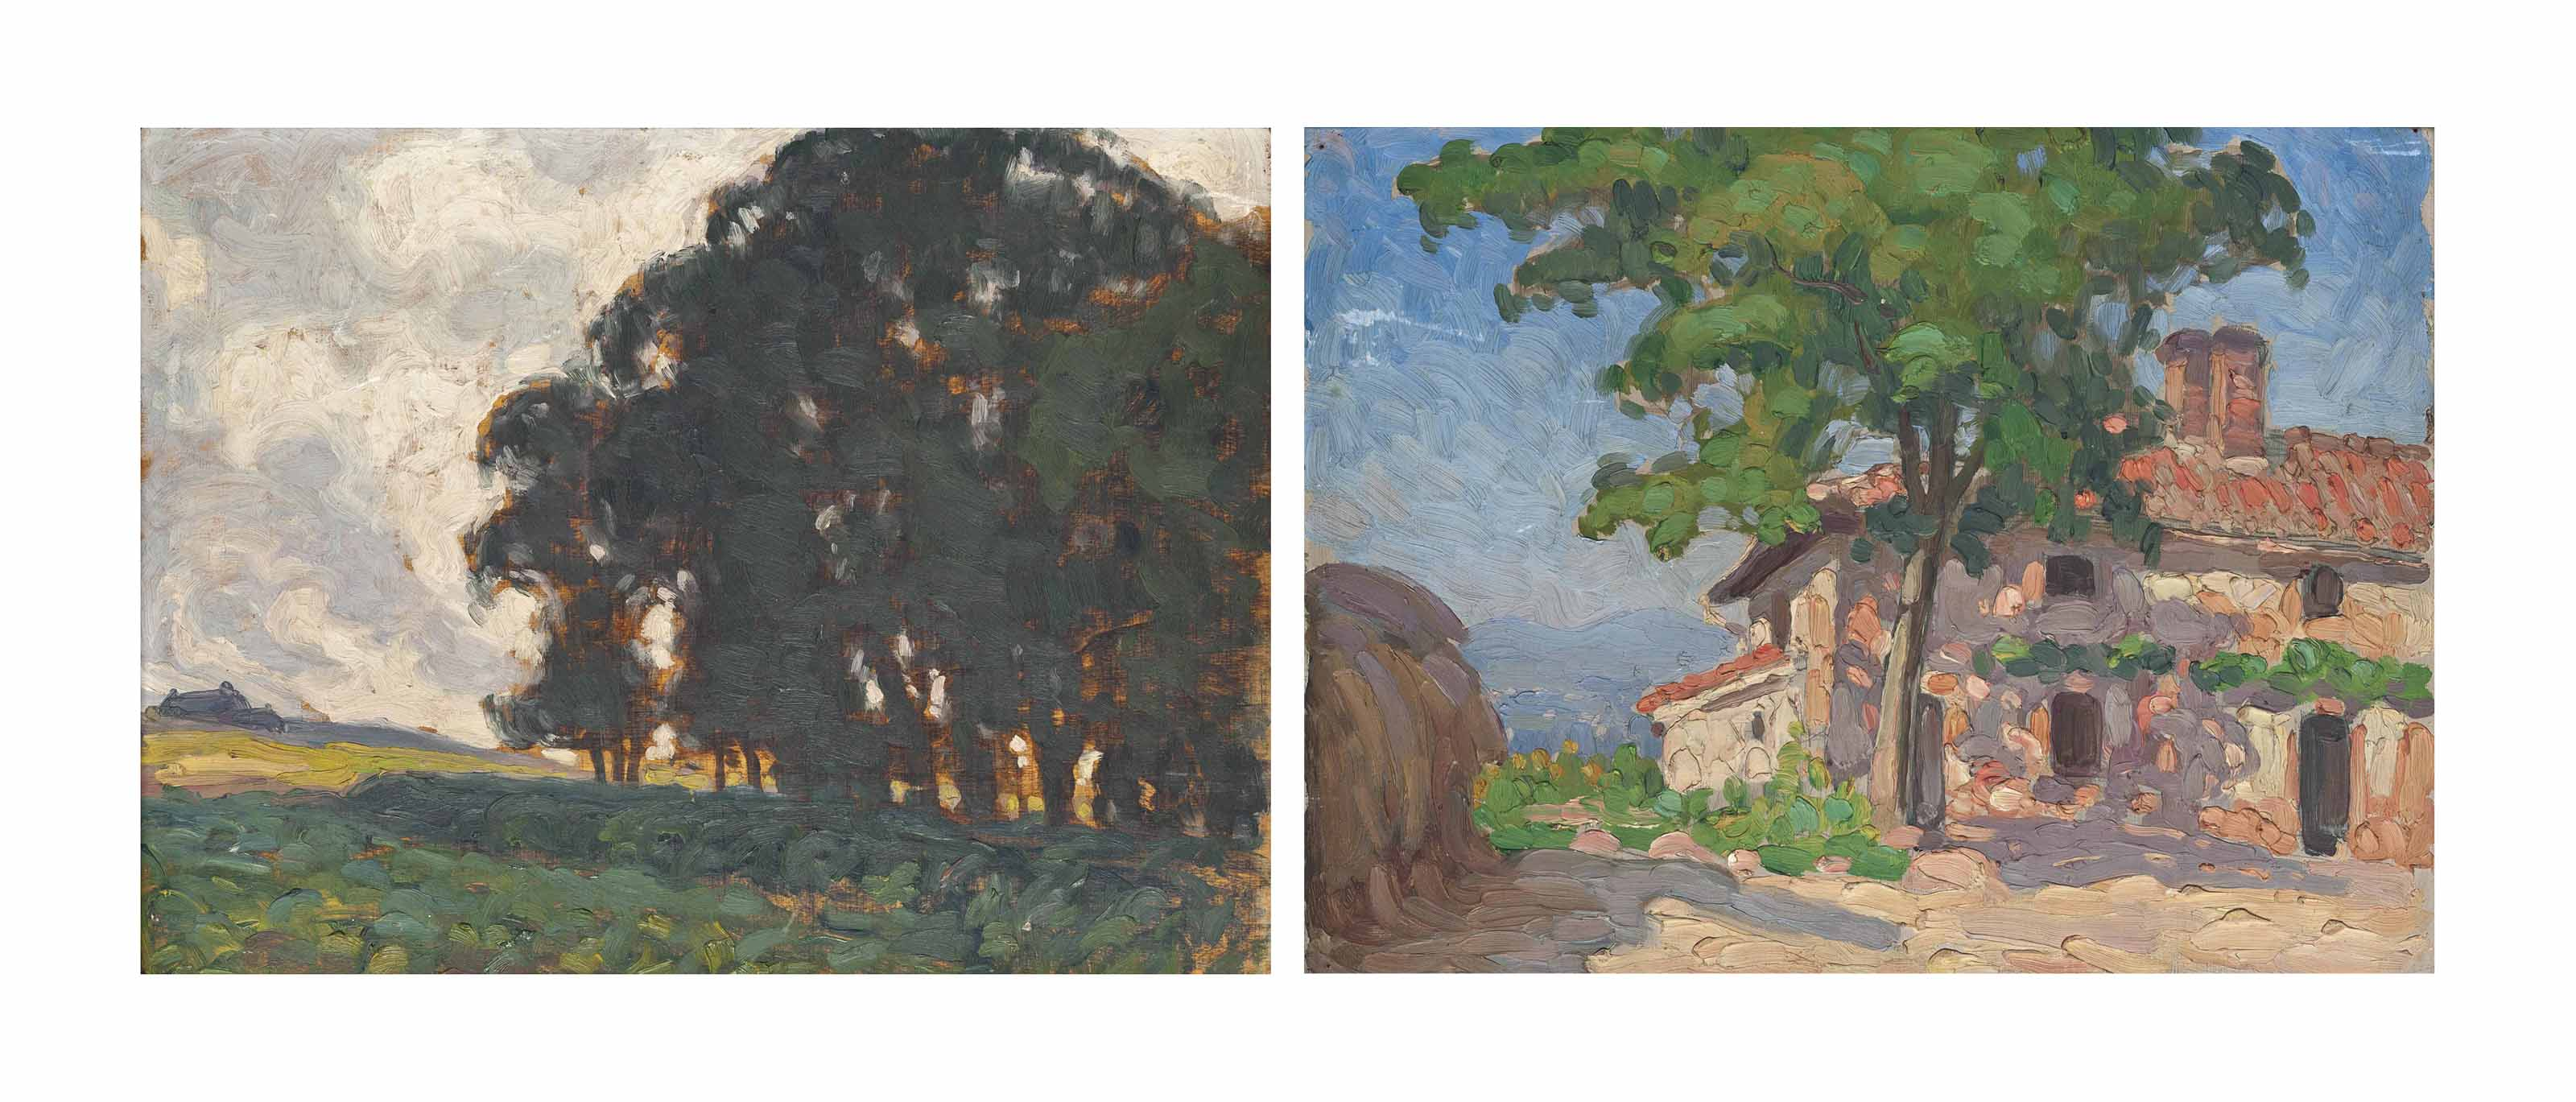 Five oil sketches: The lake shore, Geneva; A copse on the edge of a field, near Évian-les-Bains; The red farm house, Dalecarlia, Sweden; An Italian landscape with a church; and Study of a farm house